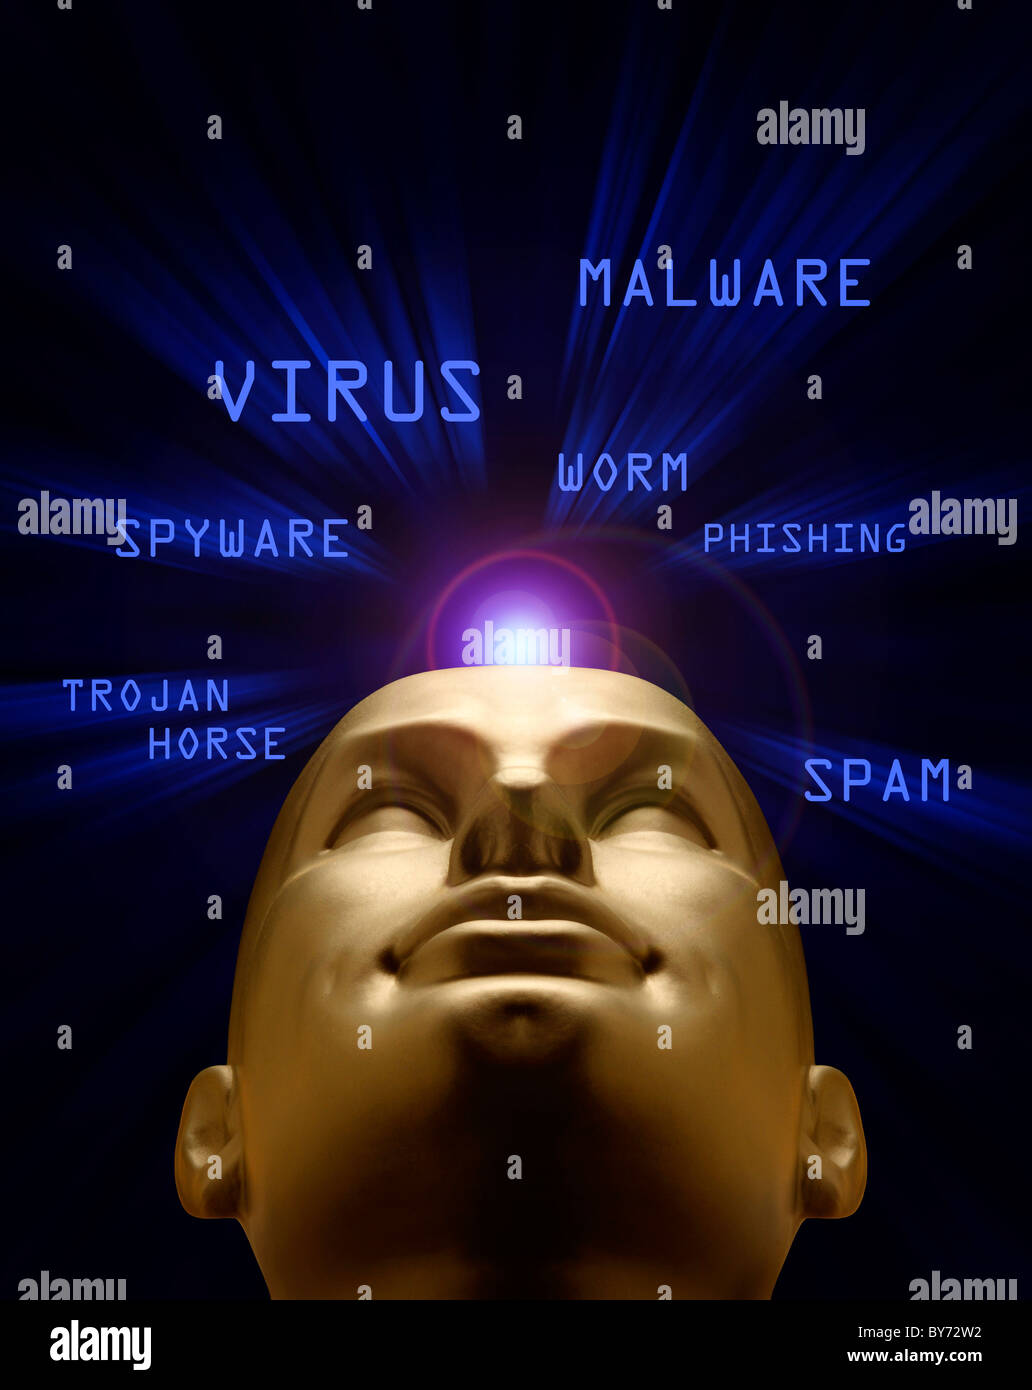 Mannequin head in a blue vortex of cyber attack terms - Stock Image